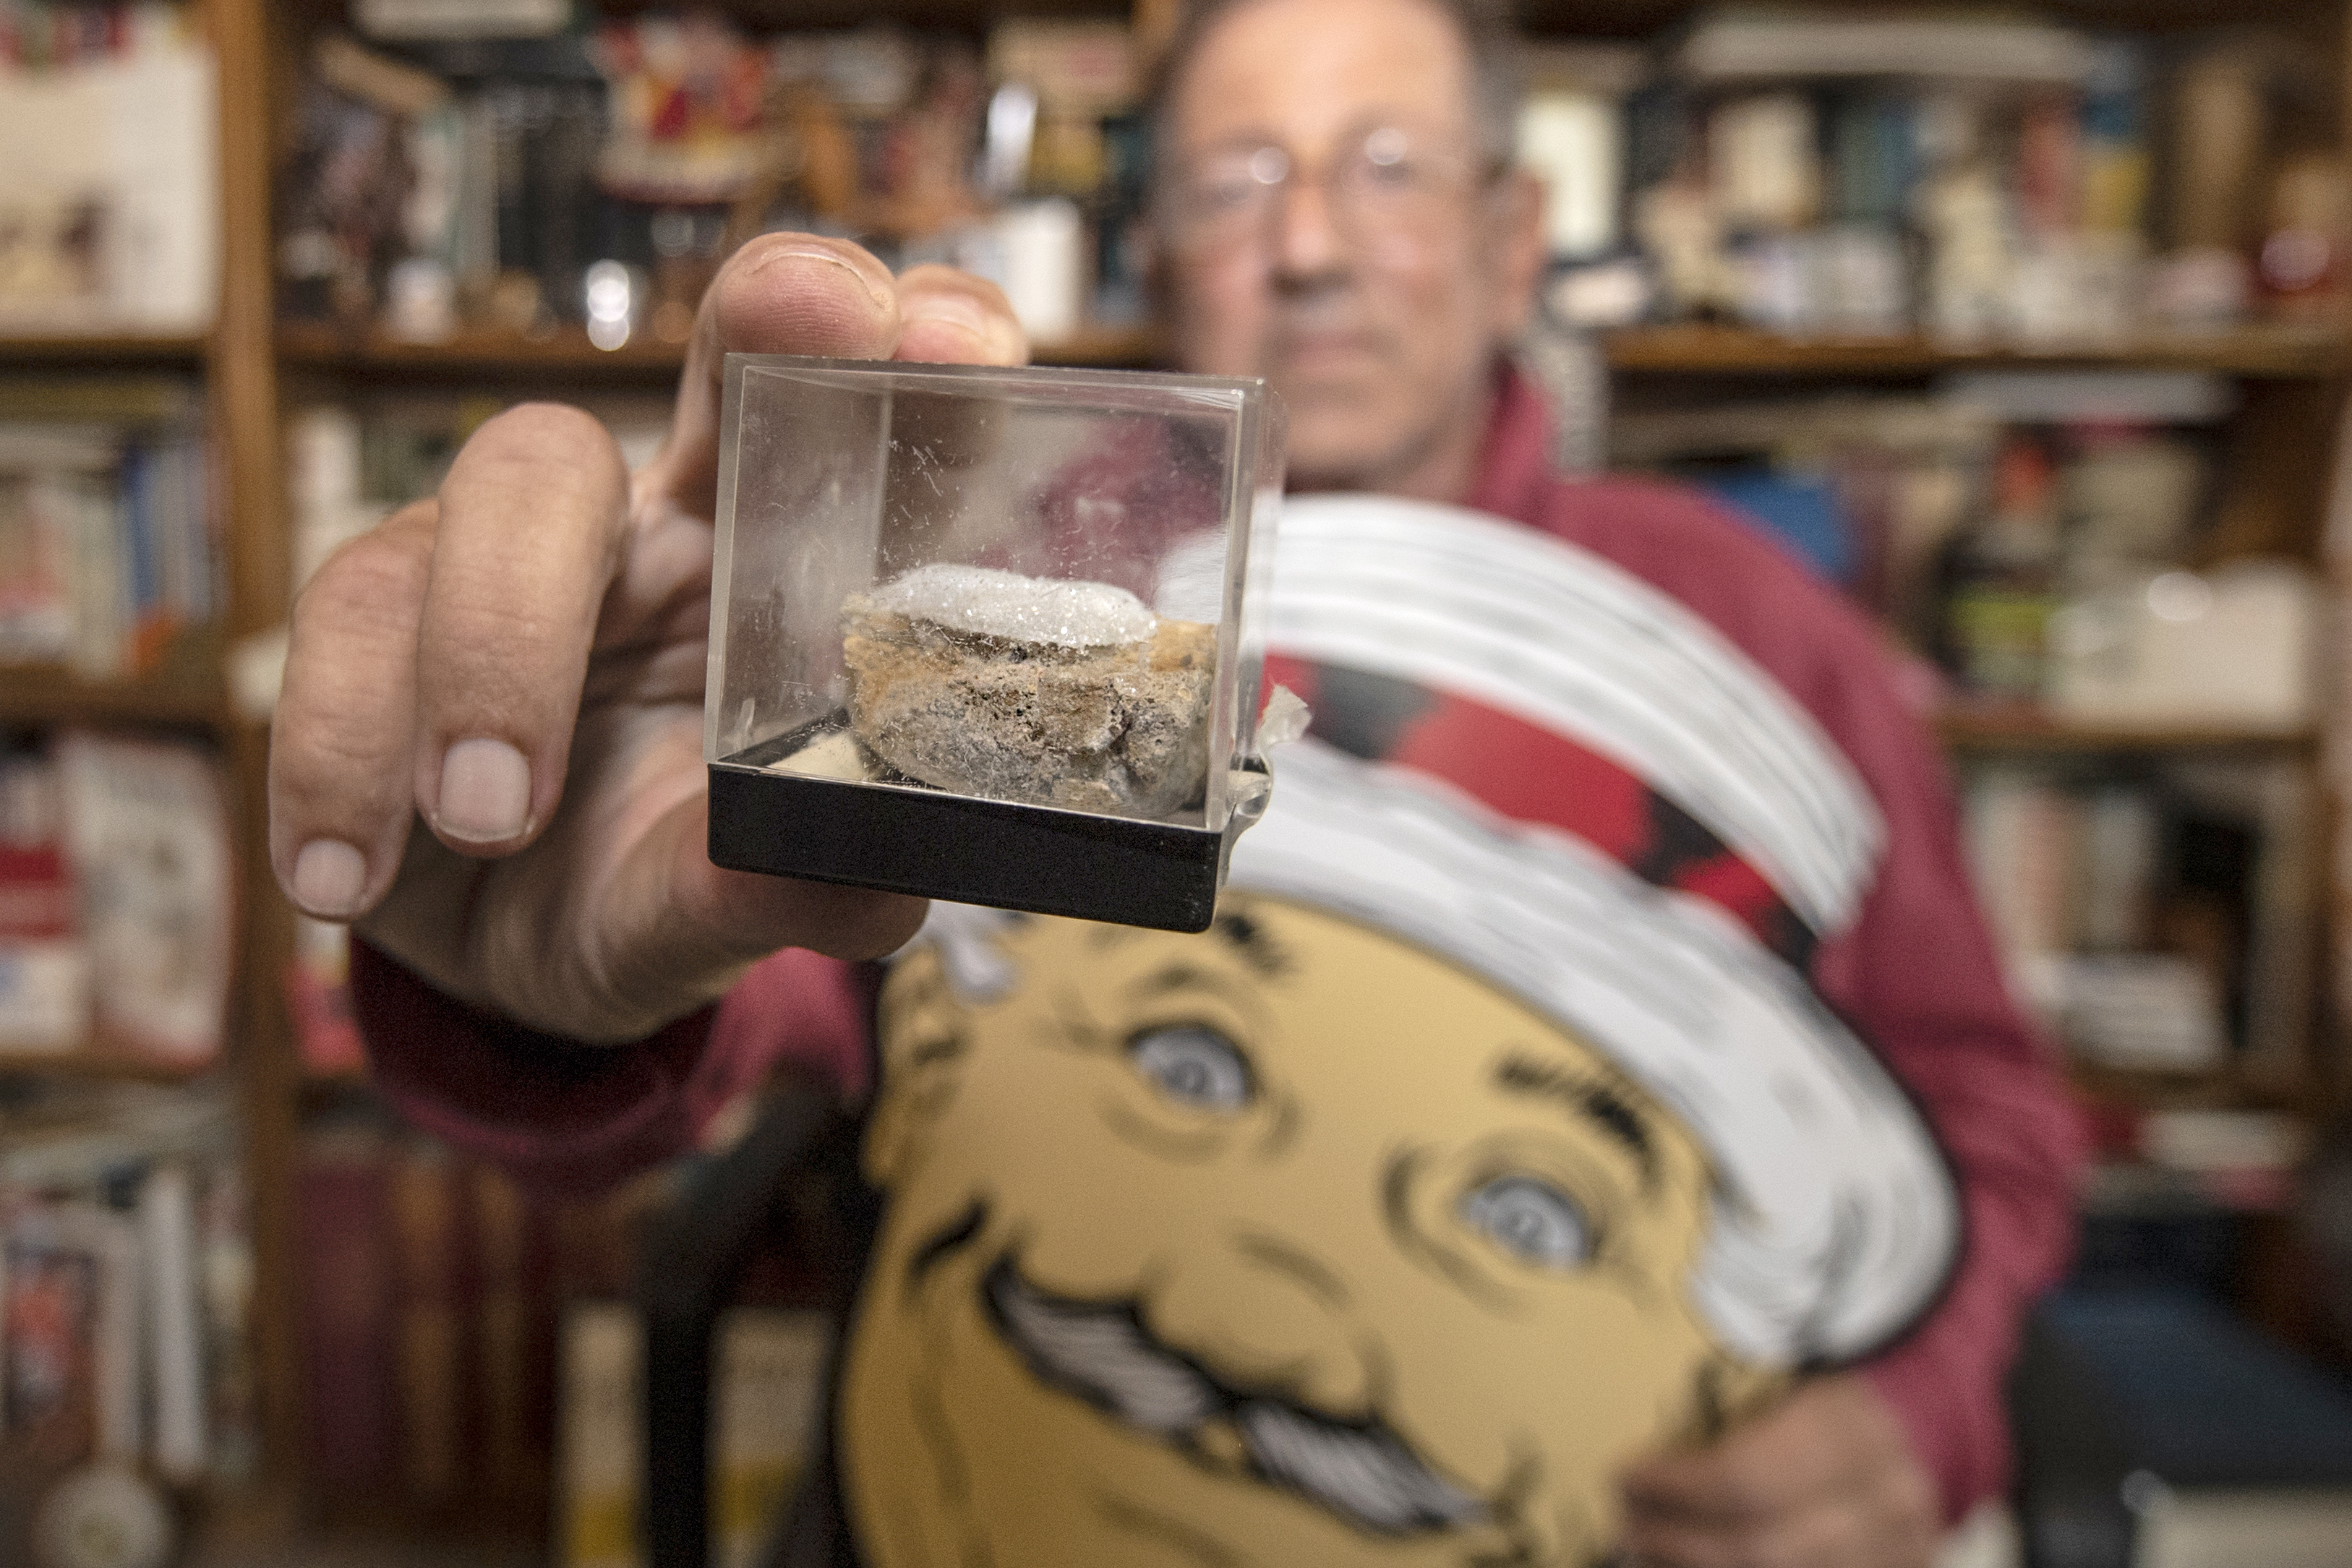 Robert Strauss shows a souvenir fragment of pavement from the notorious Ellisburg Circle in Cherry Hill. Strauss, a writer, grew up in the township and has collected some memorabilia of its postwar boom years. He regards the changes brought about by redevelopment as part of Cherry Hill´s DNA.